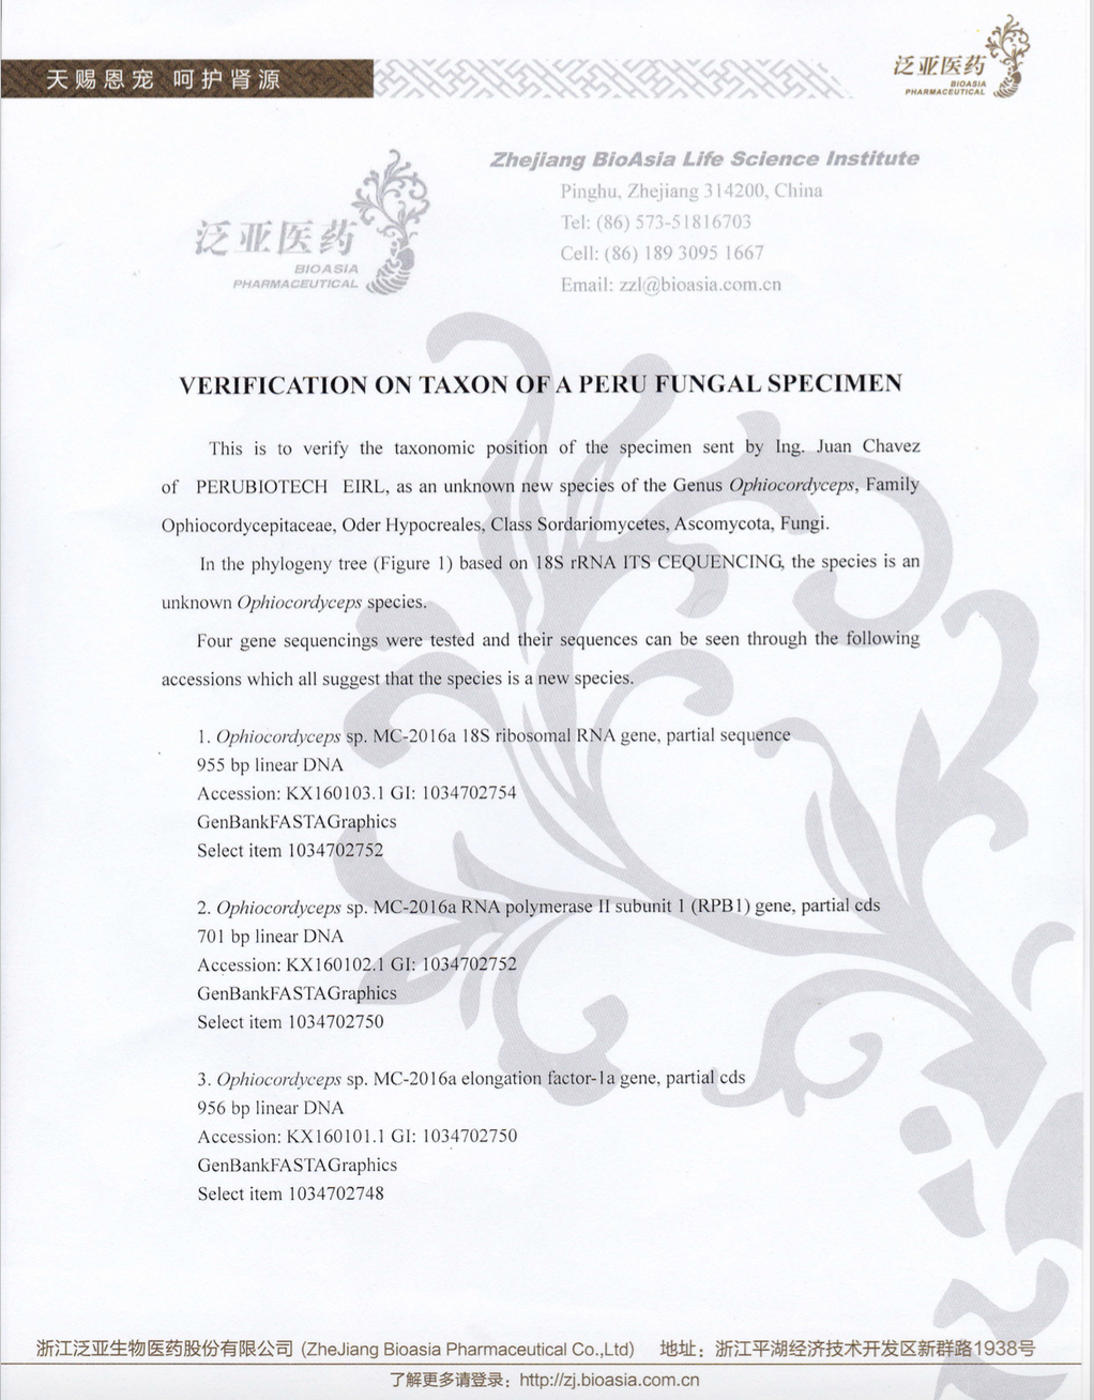 Verification on Taxon of a Perú Fungal Specimen (page 1)